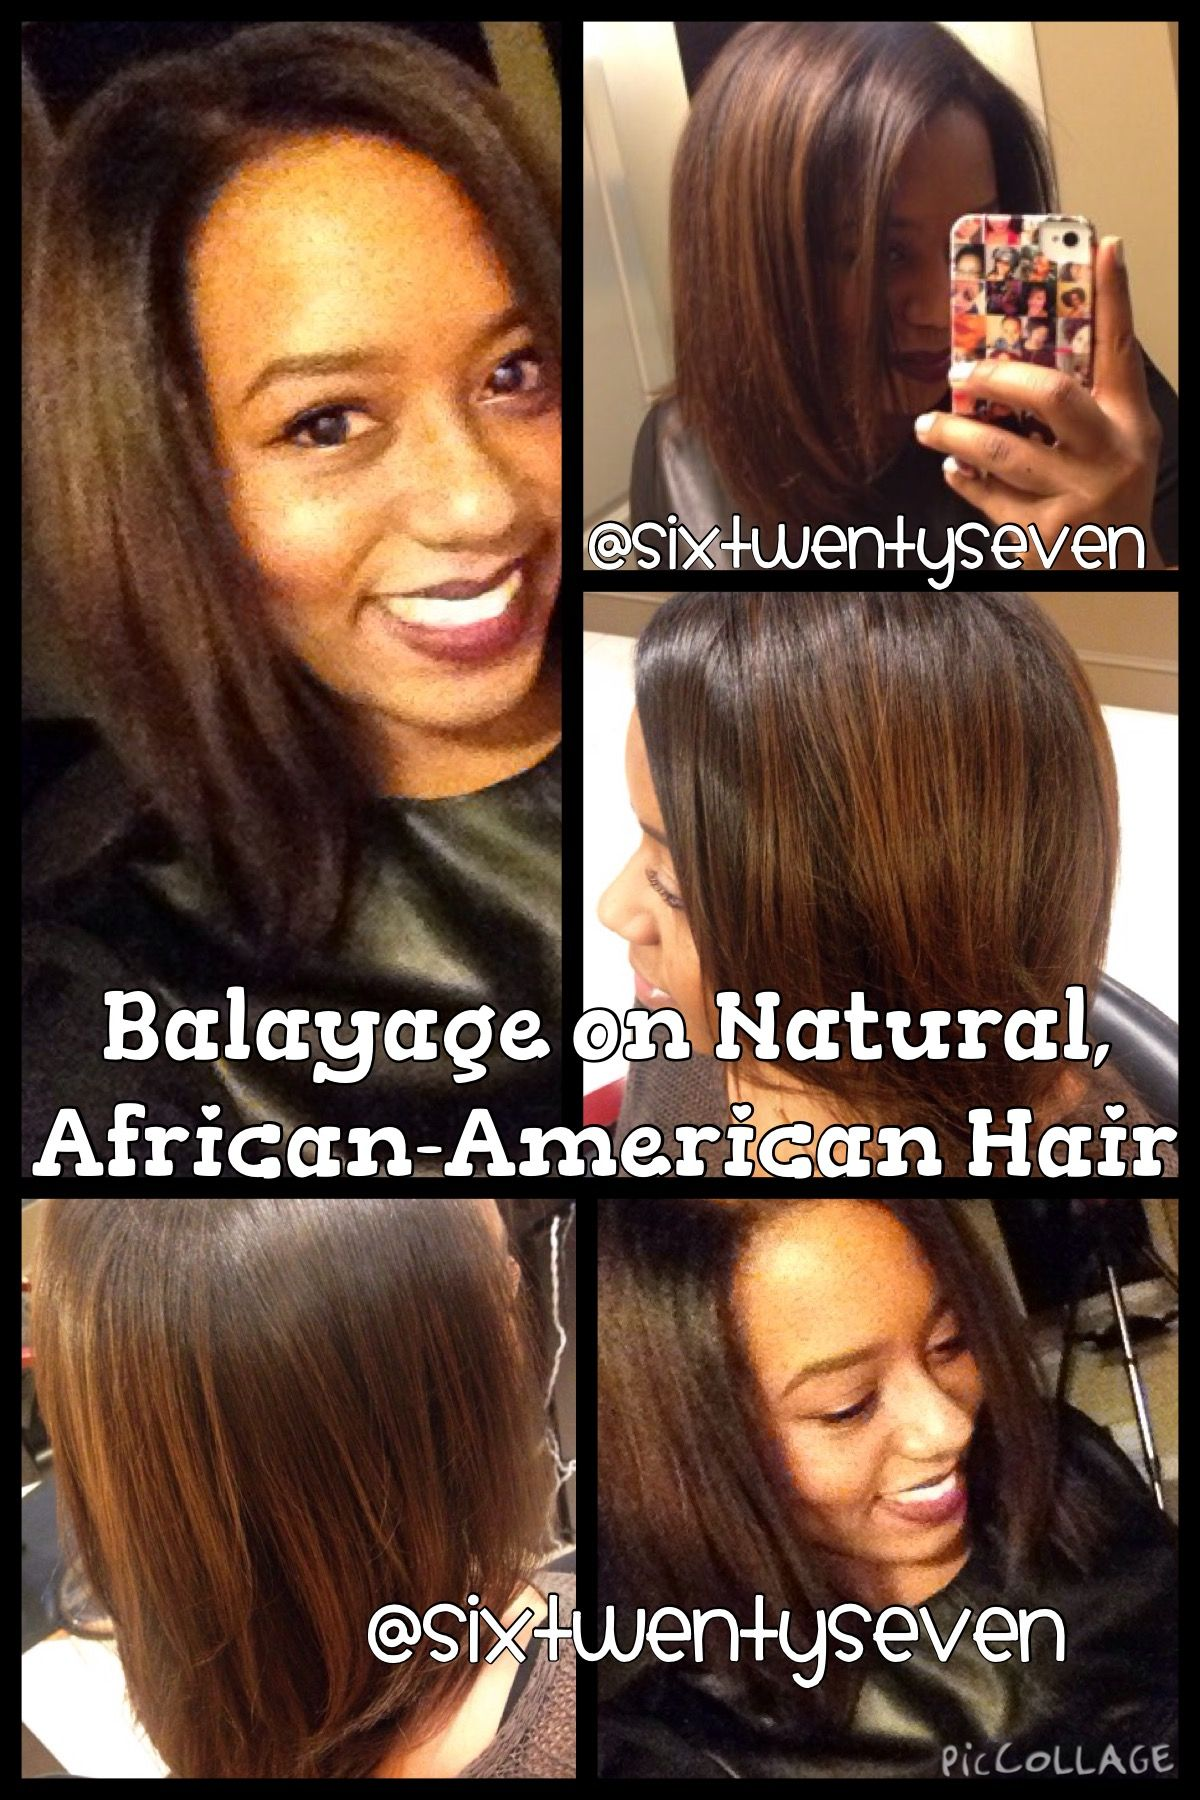 Results Of The Balayage Technique On Natural African American Hair